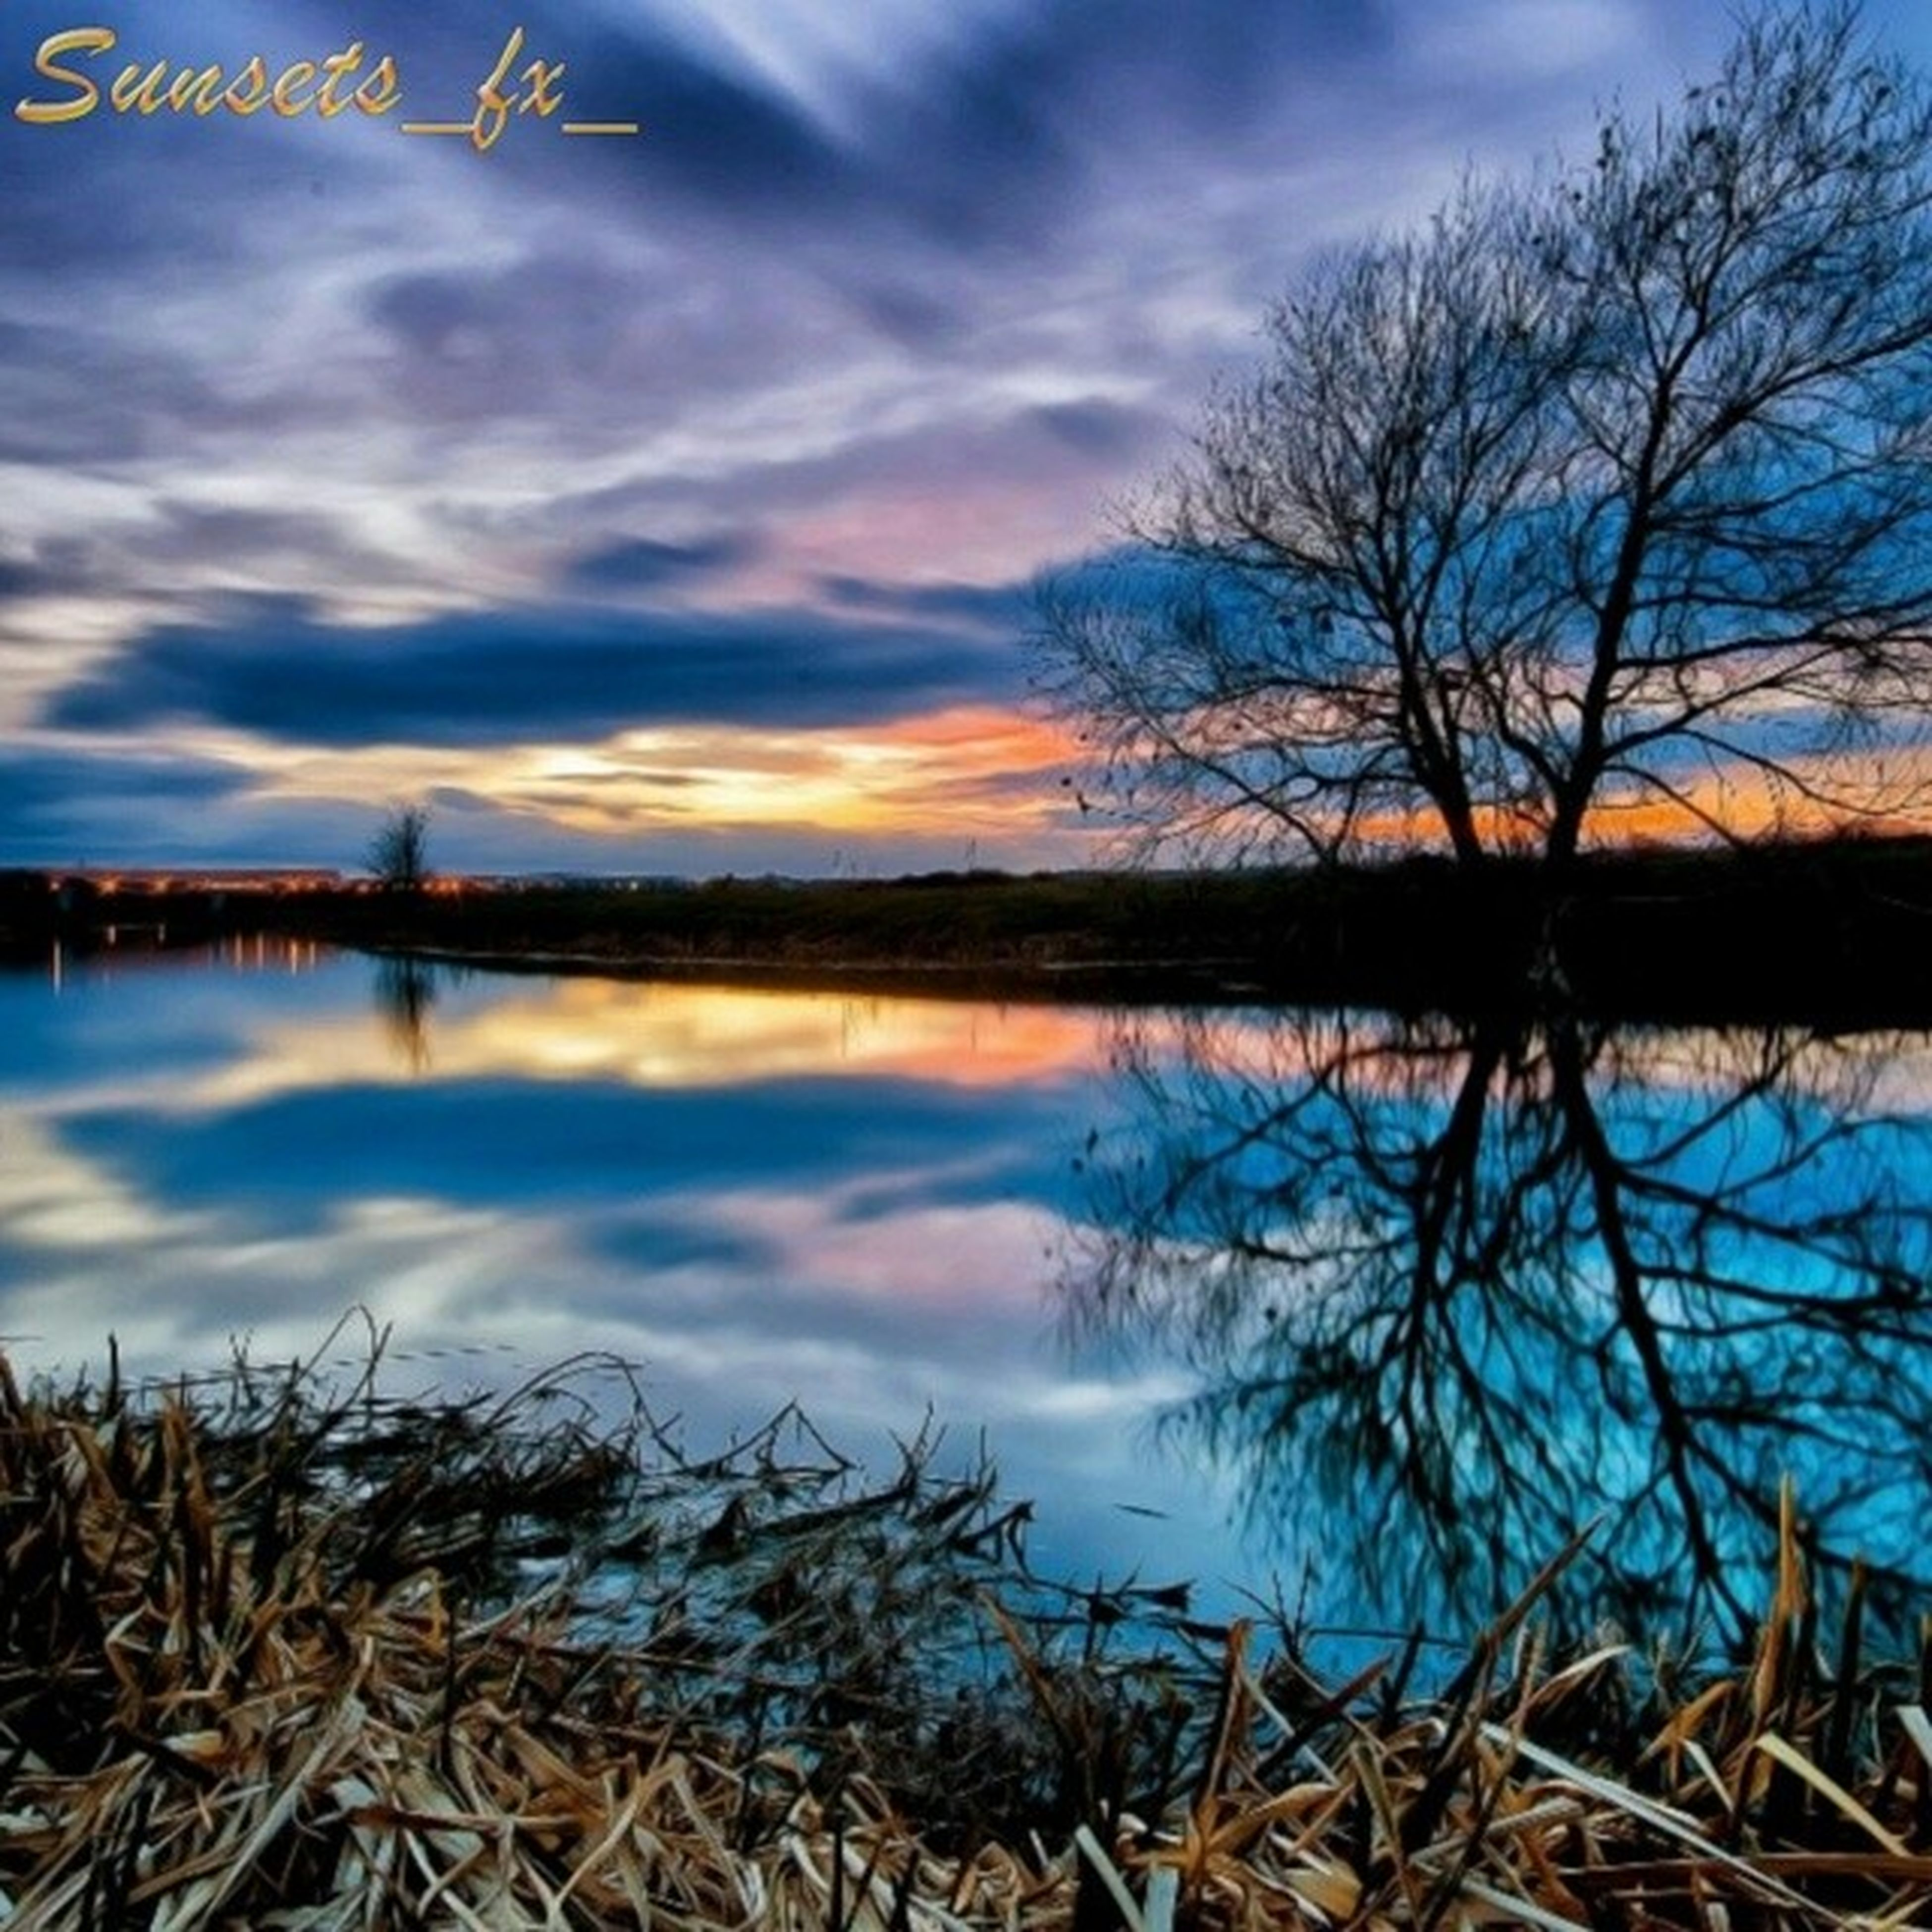 sky, tranquility, tranquil scene, water, lake, bare tree, reflection, scenics, beauty in nature, cloud - sky, sunset, nature, cloud, idyllic, lakeshore, tree, blue, calm, silhouette, grass